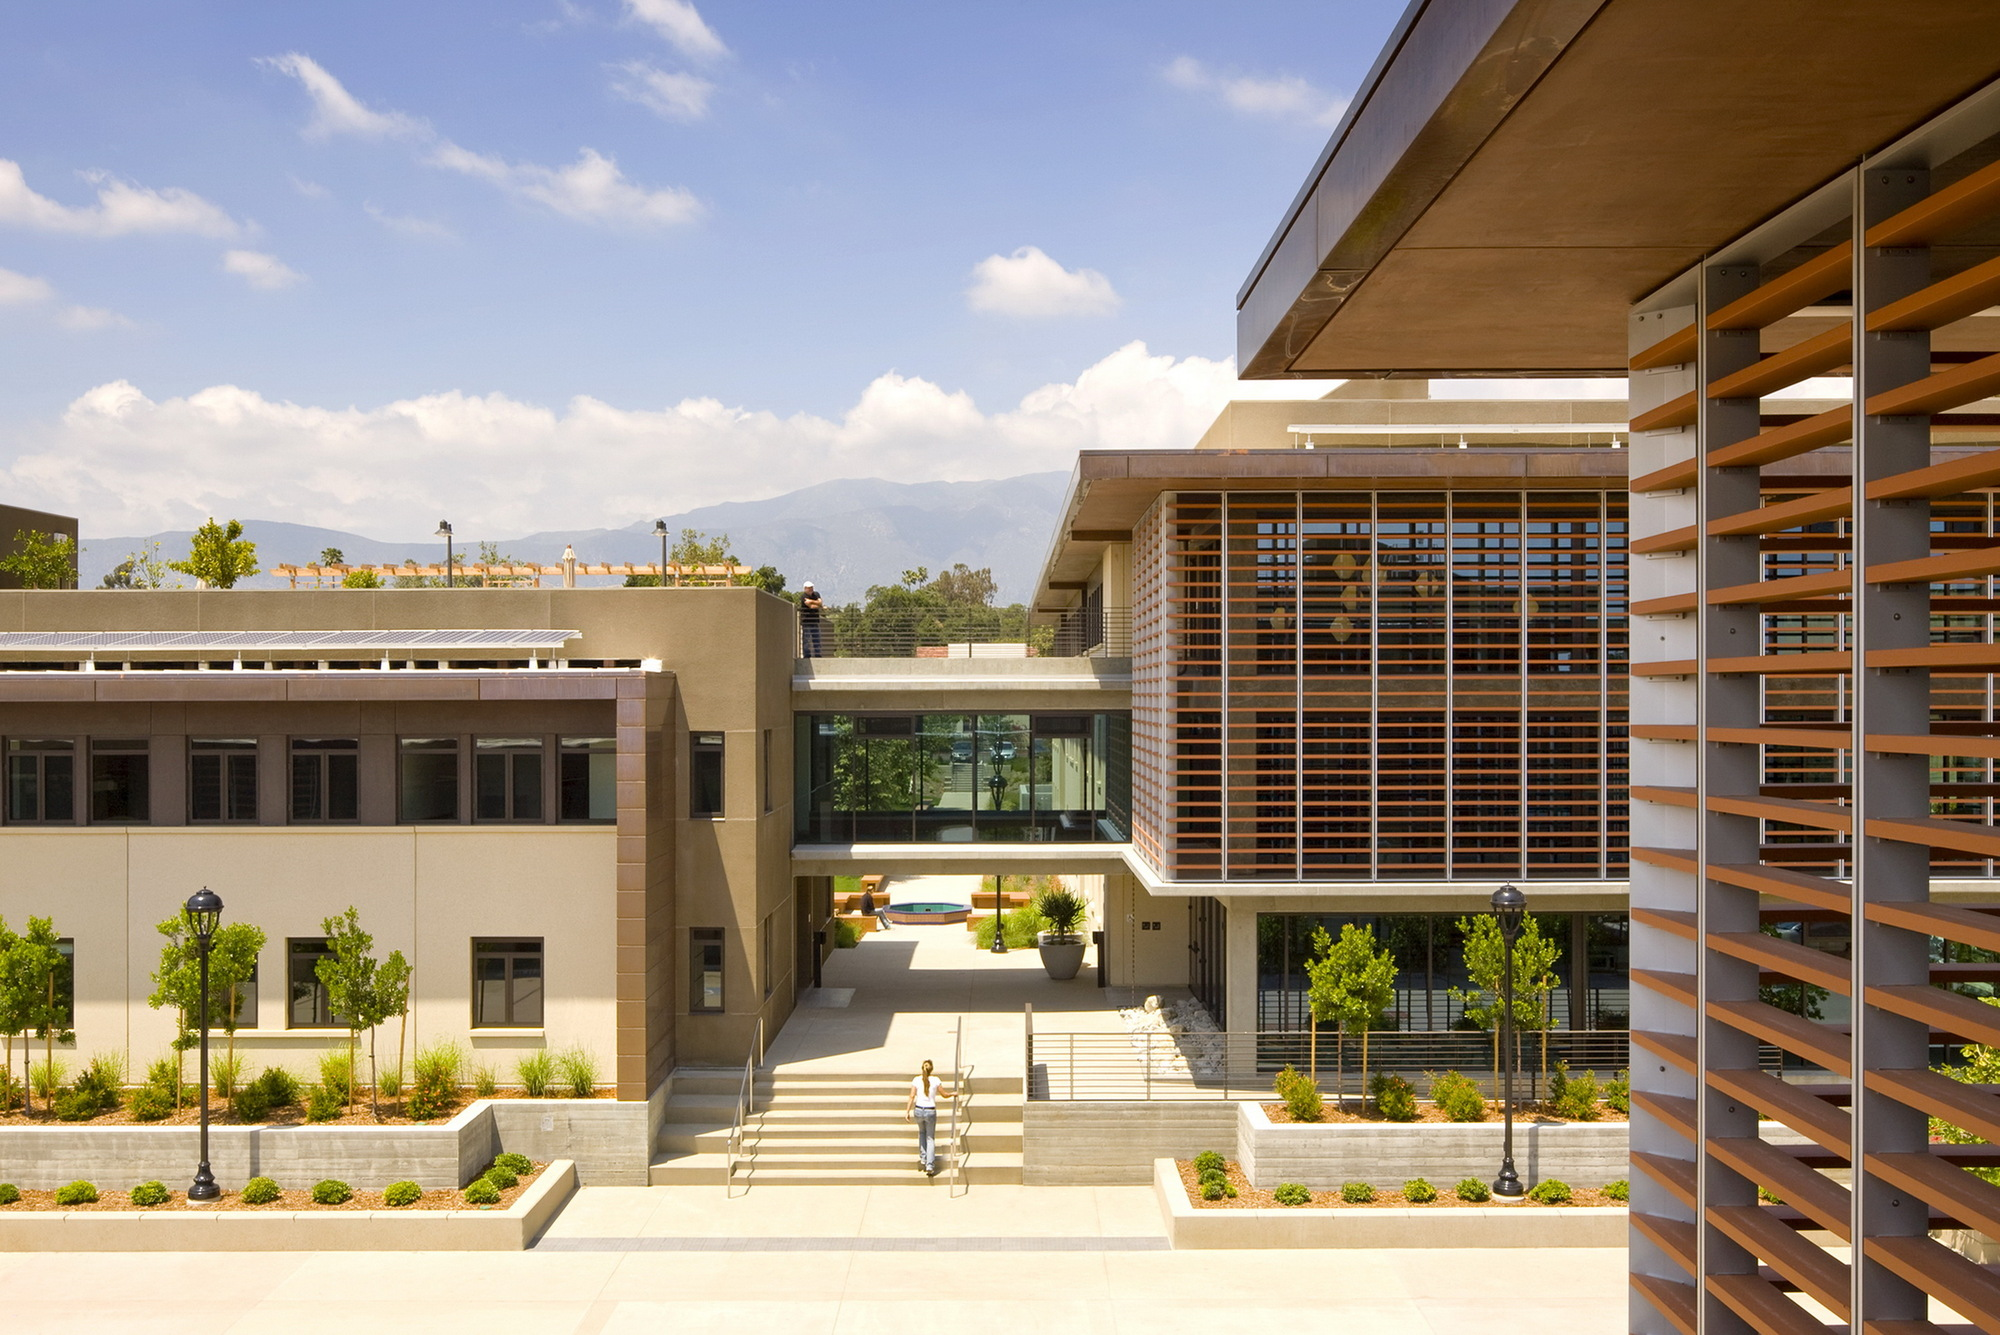 Pomona College Student Housing Ehrlich Yanai Rhee Chaney